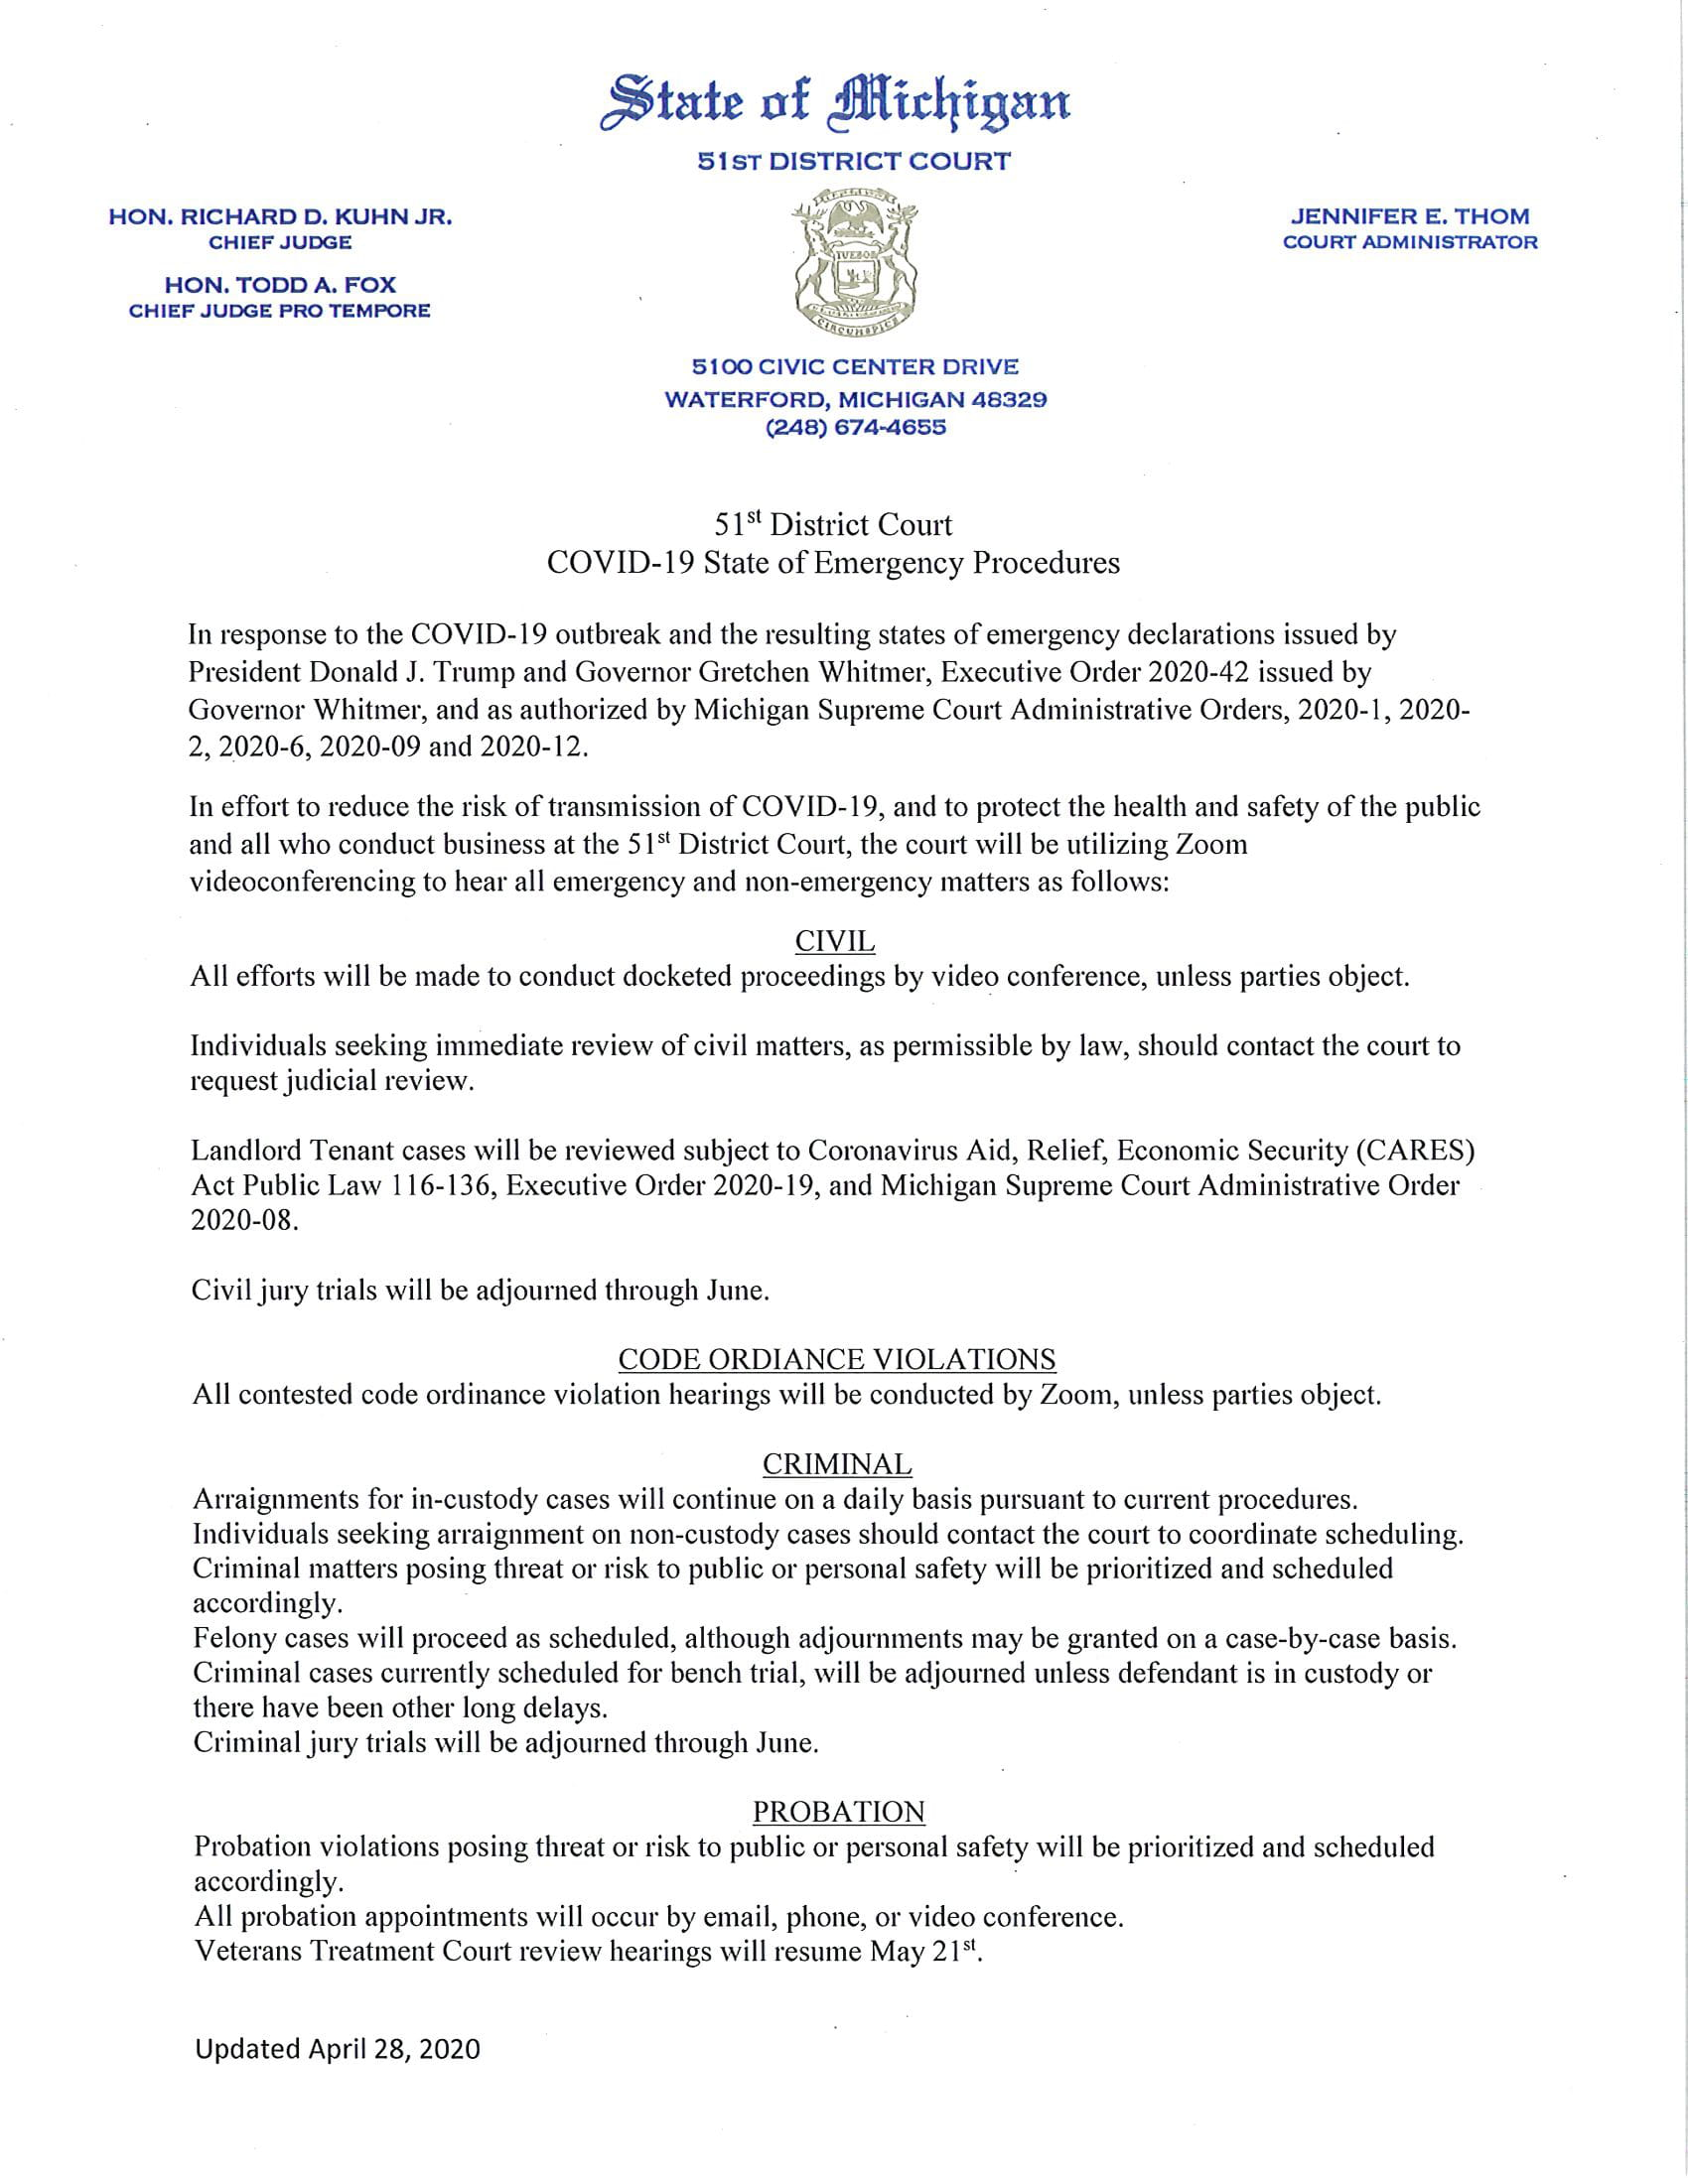 D51 Public Notice Update - April 28th, 2020-1